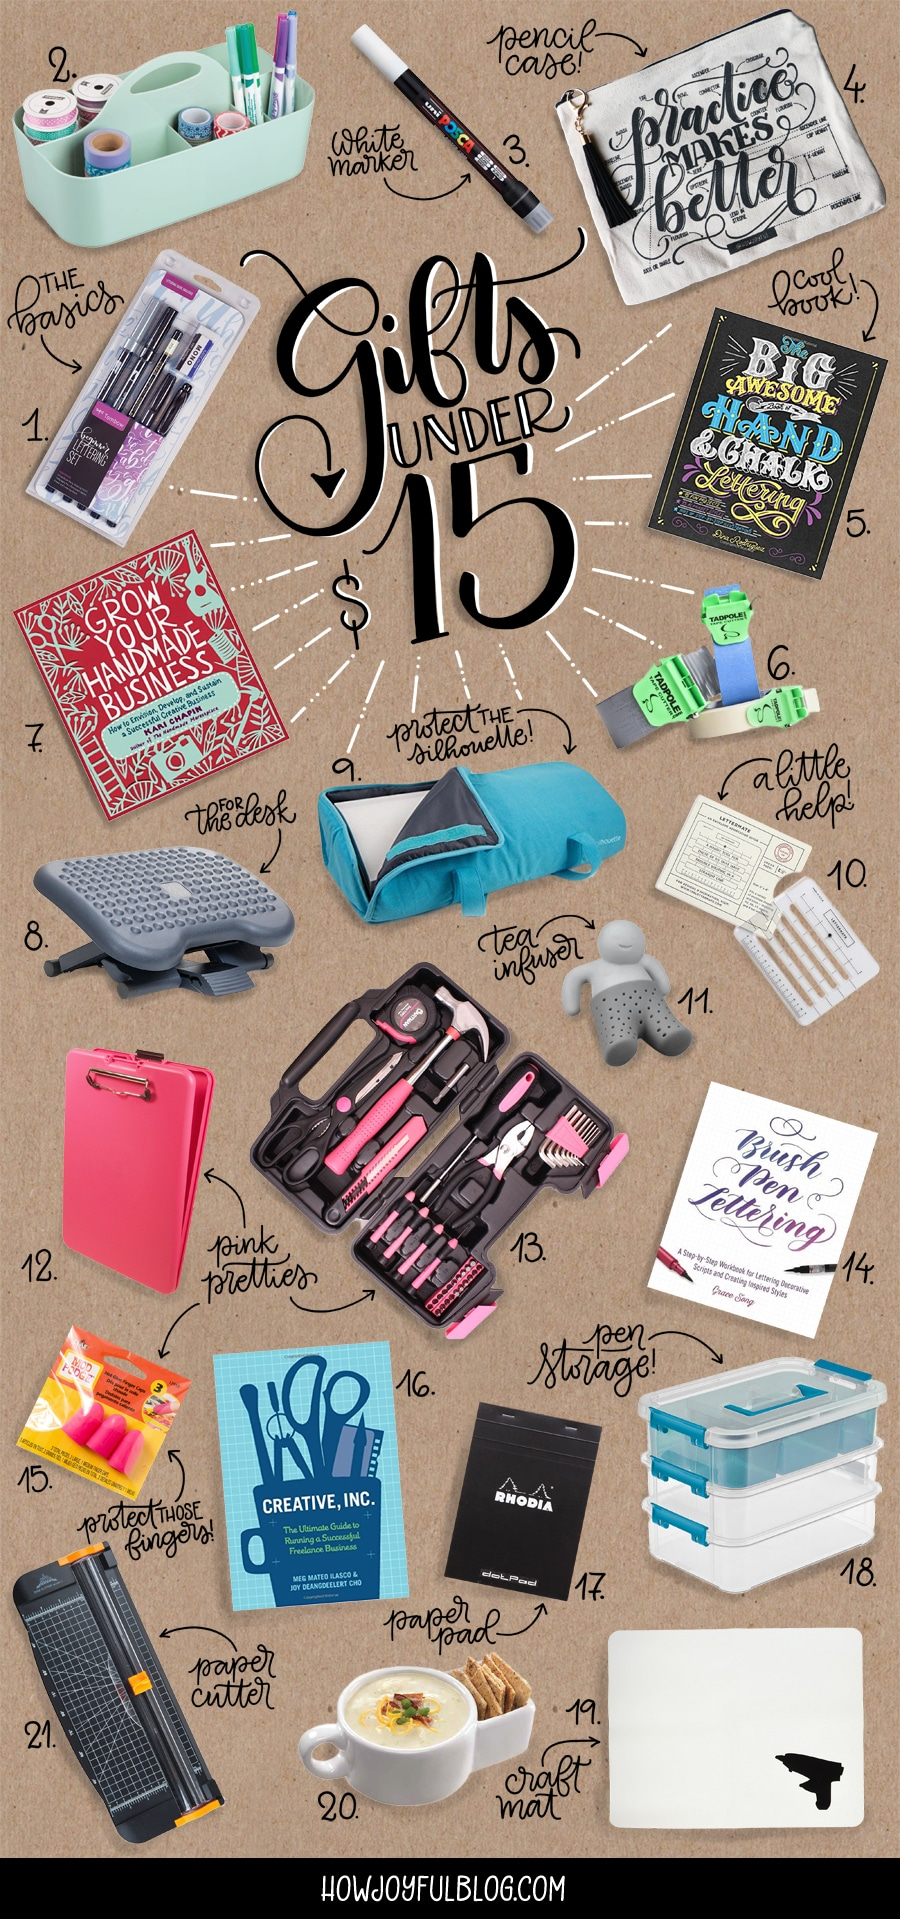 the best gifts for creatives under $15